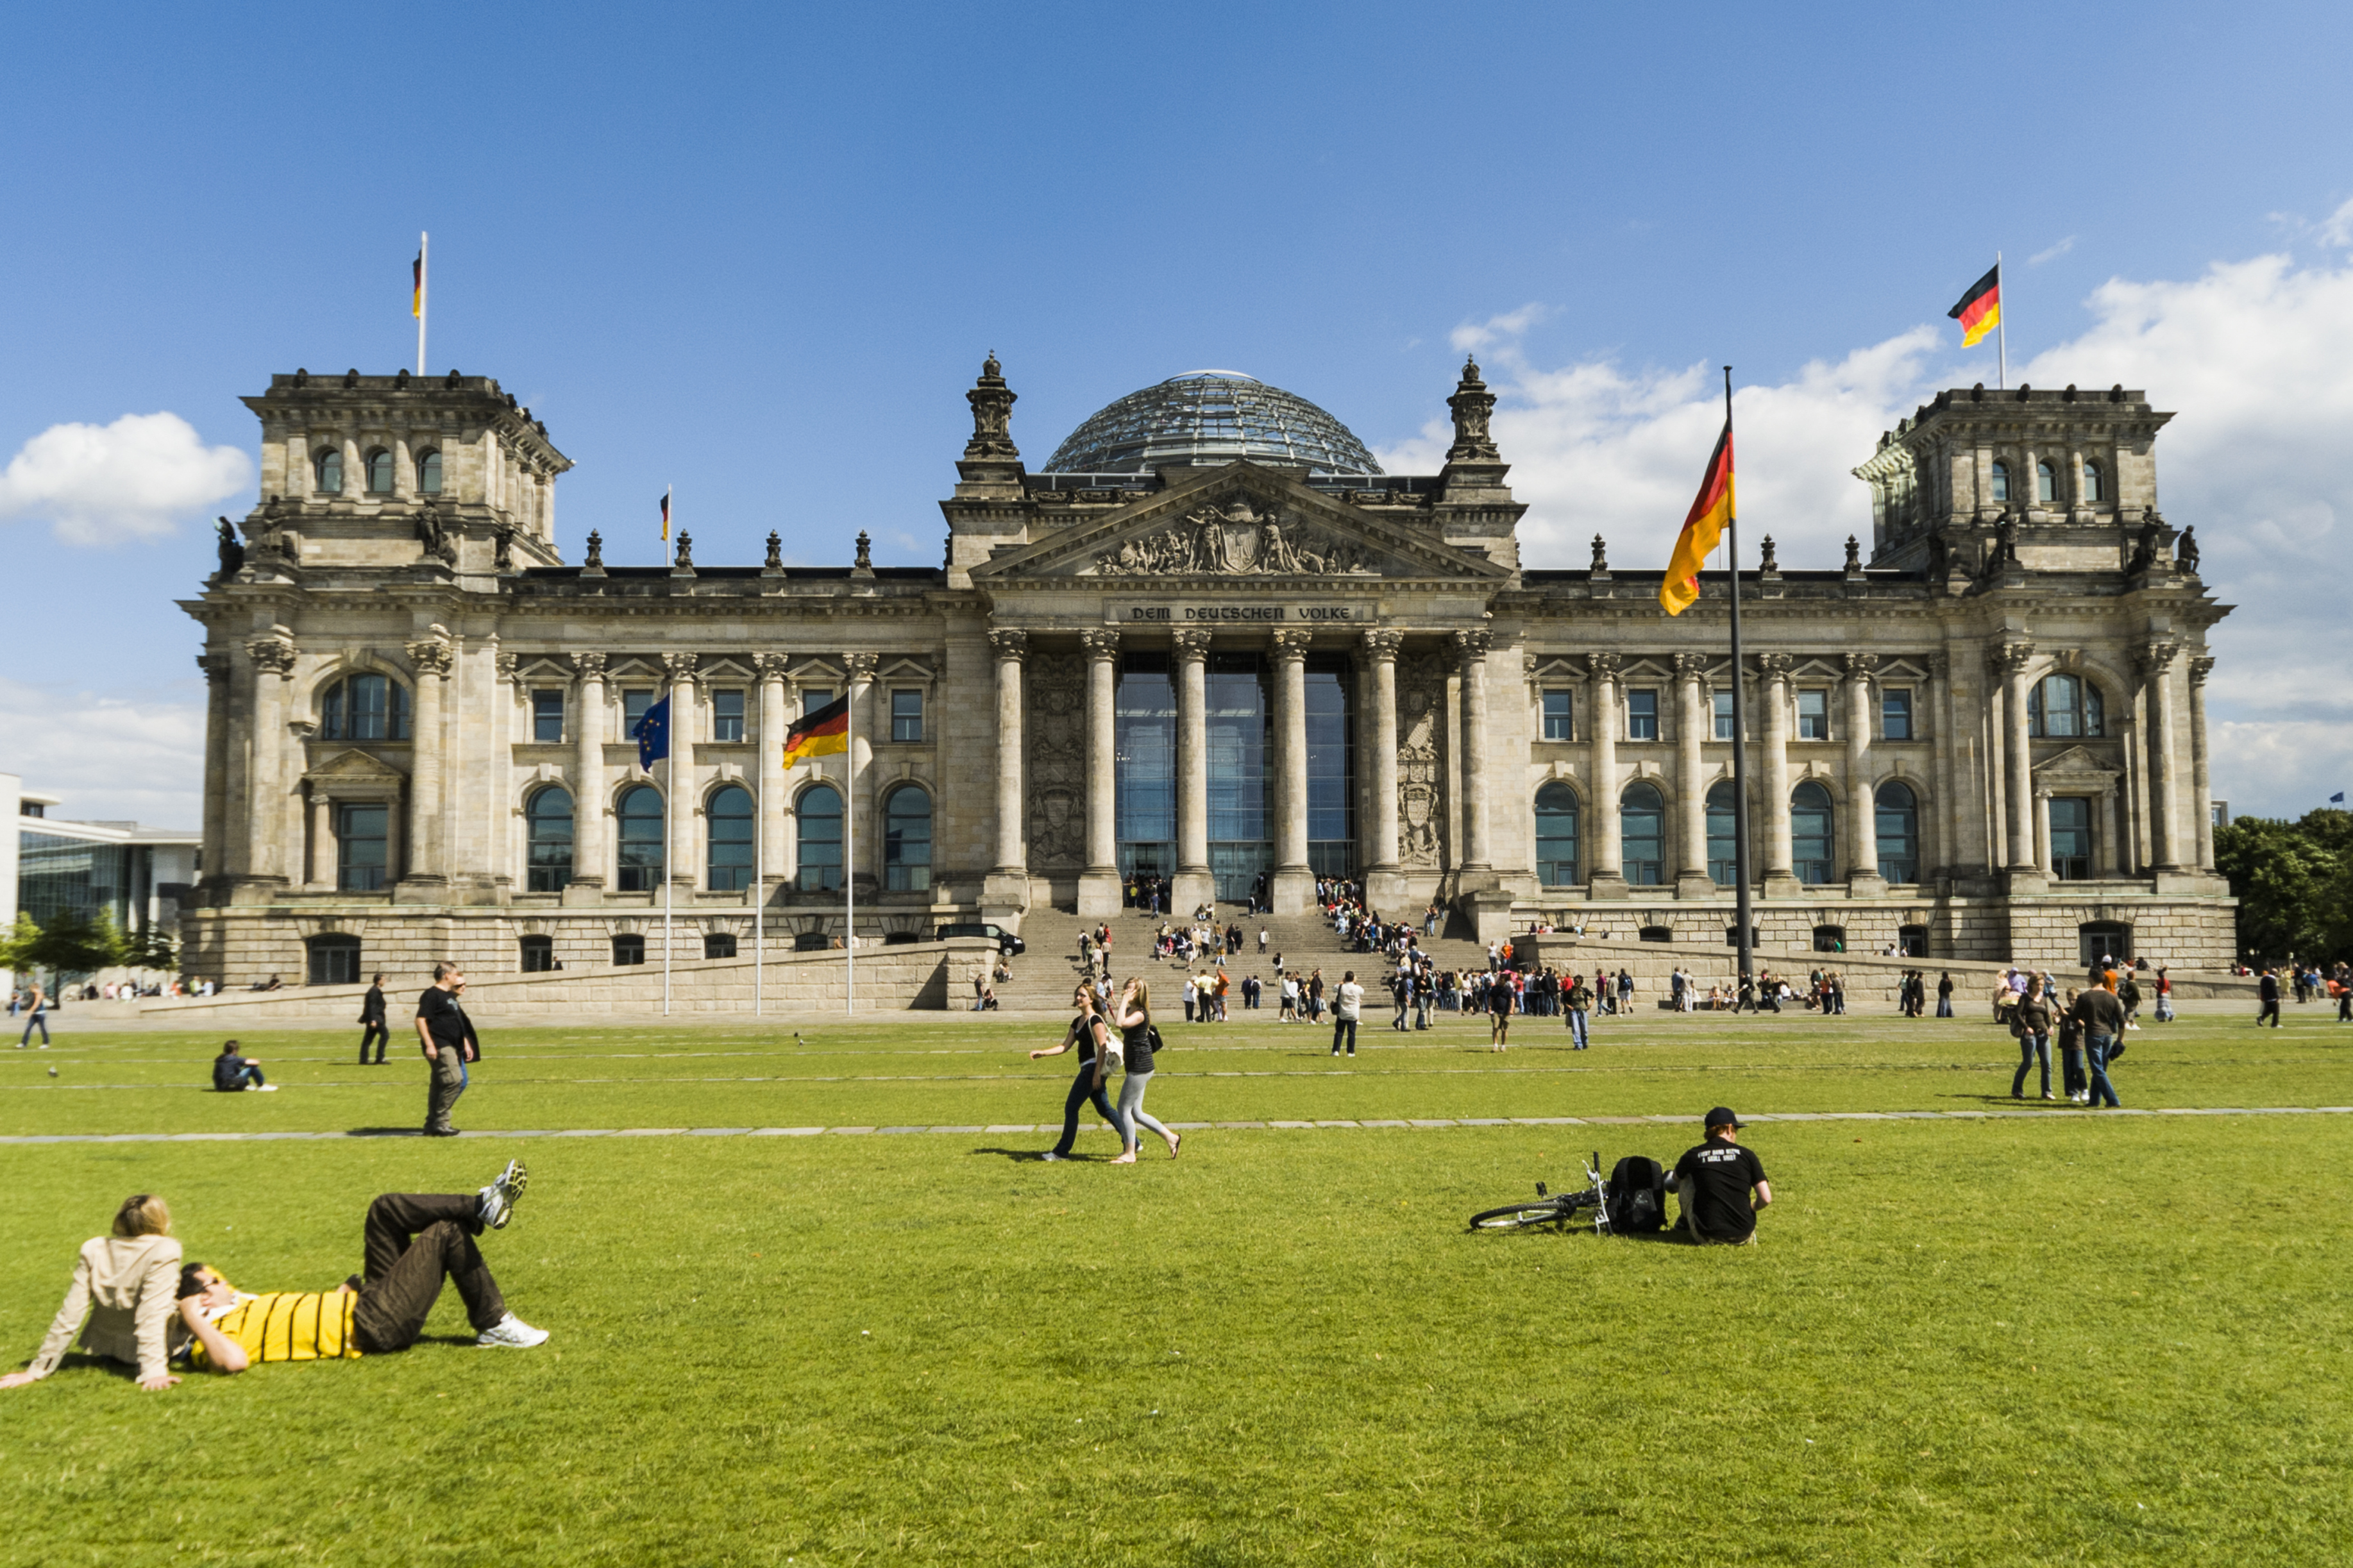 Reichstag | Berlin, Germany Attractions - Lonely Planet